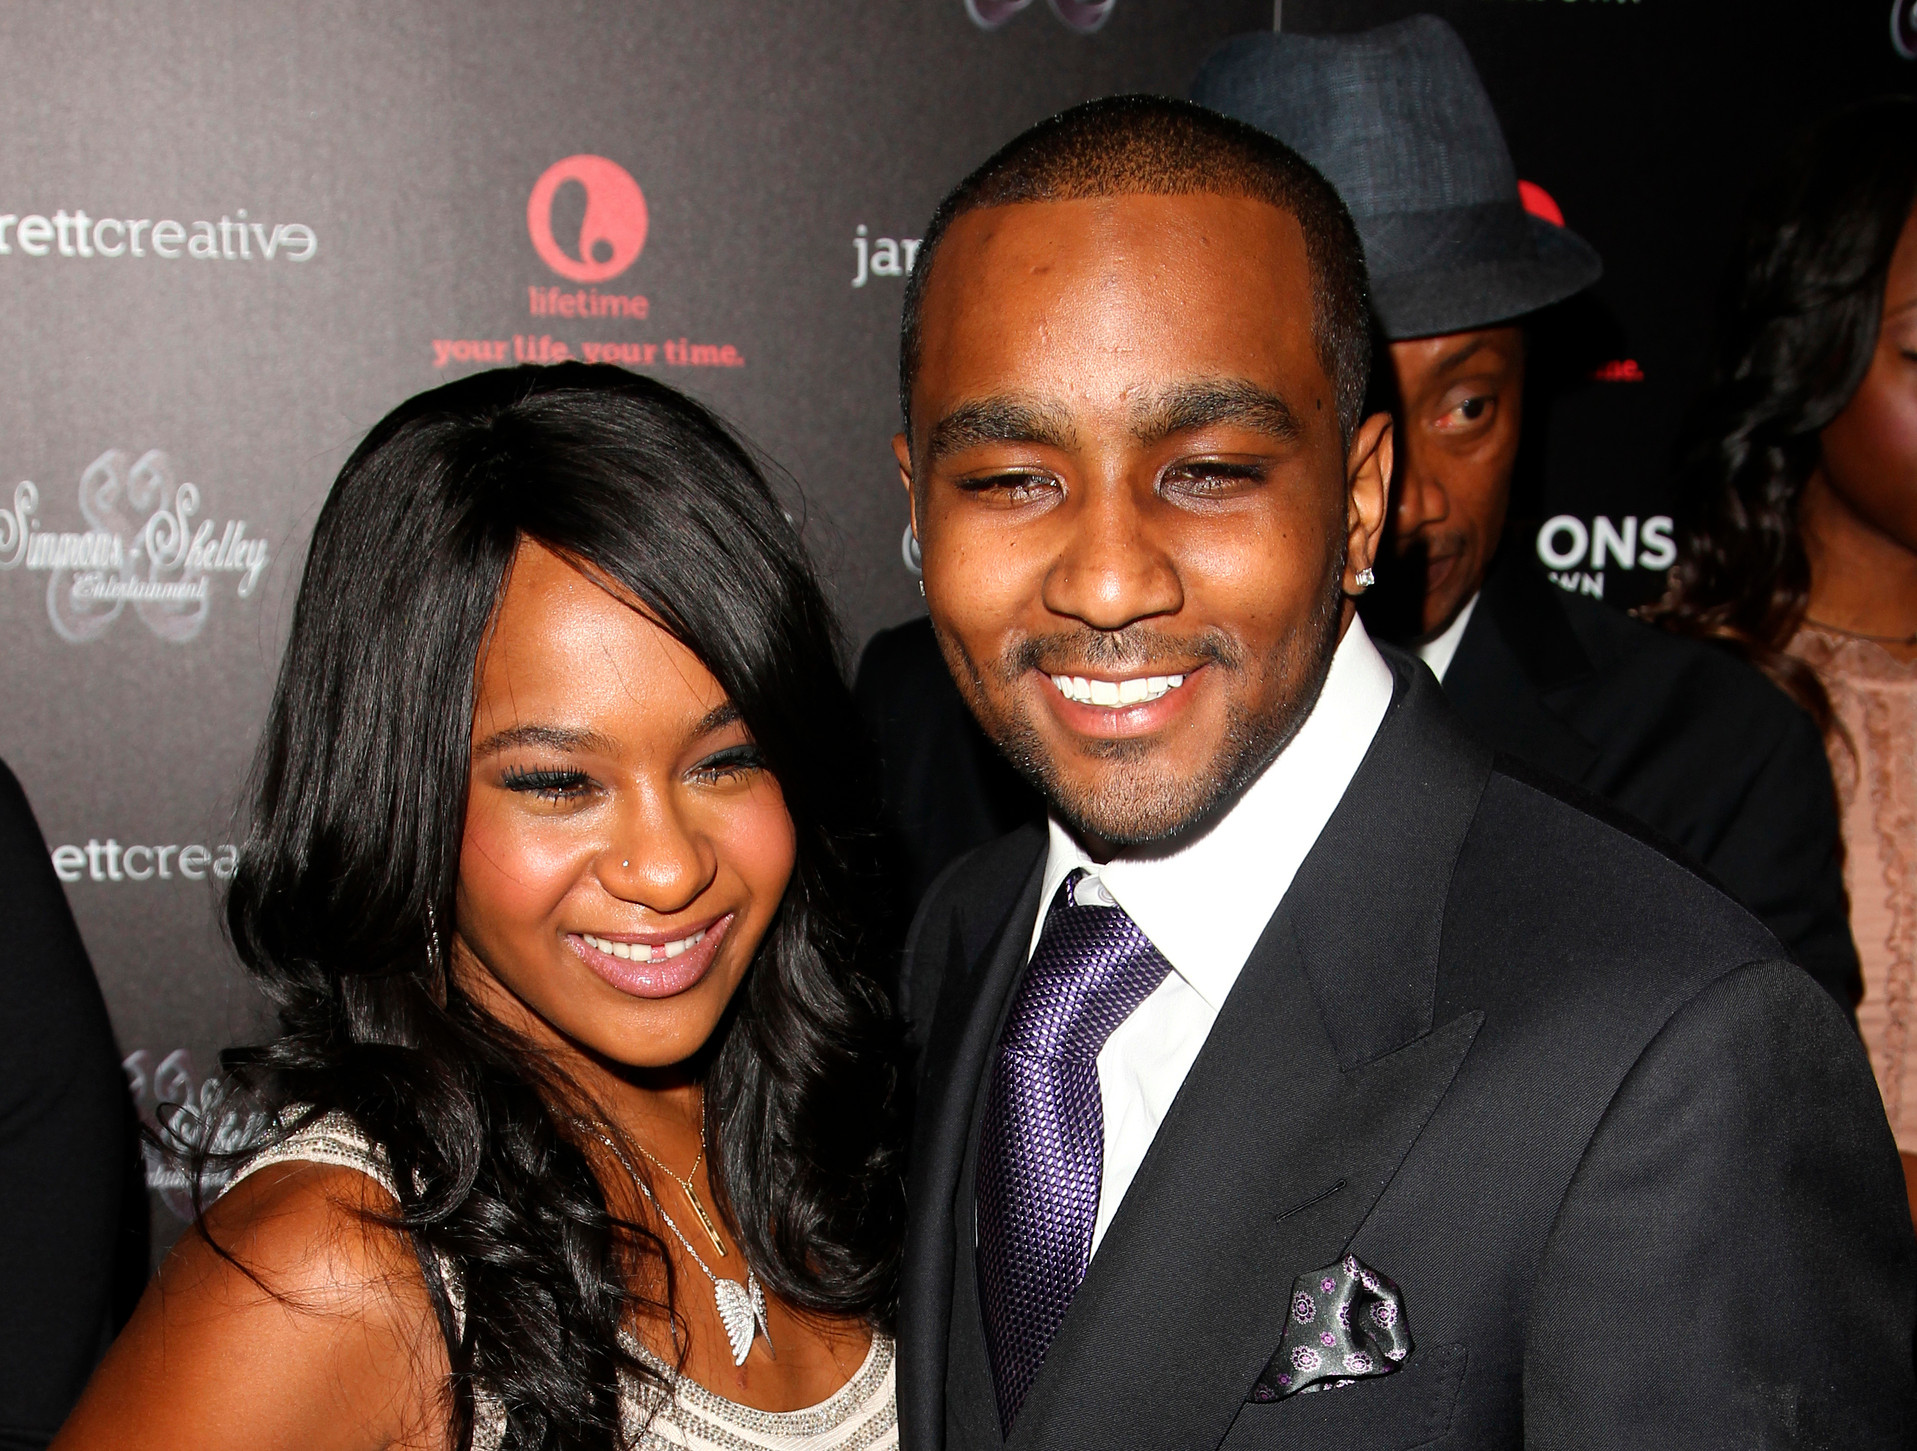 Nick Gordon, the previous sweetheart of Bobbi Kristina Brown, Dies at 30